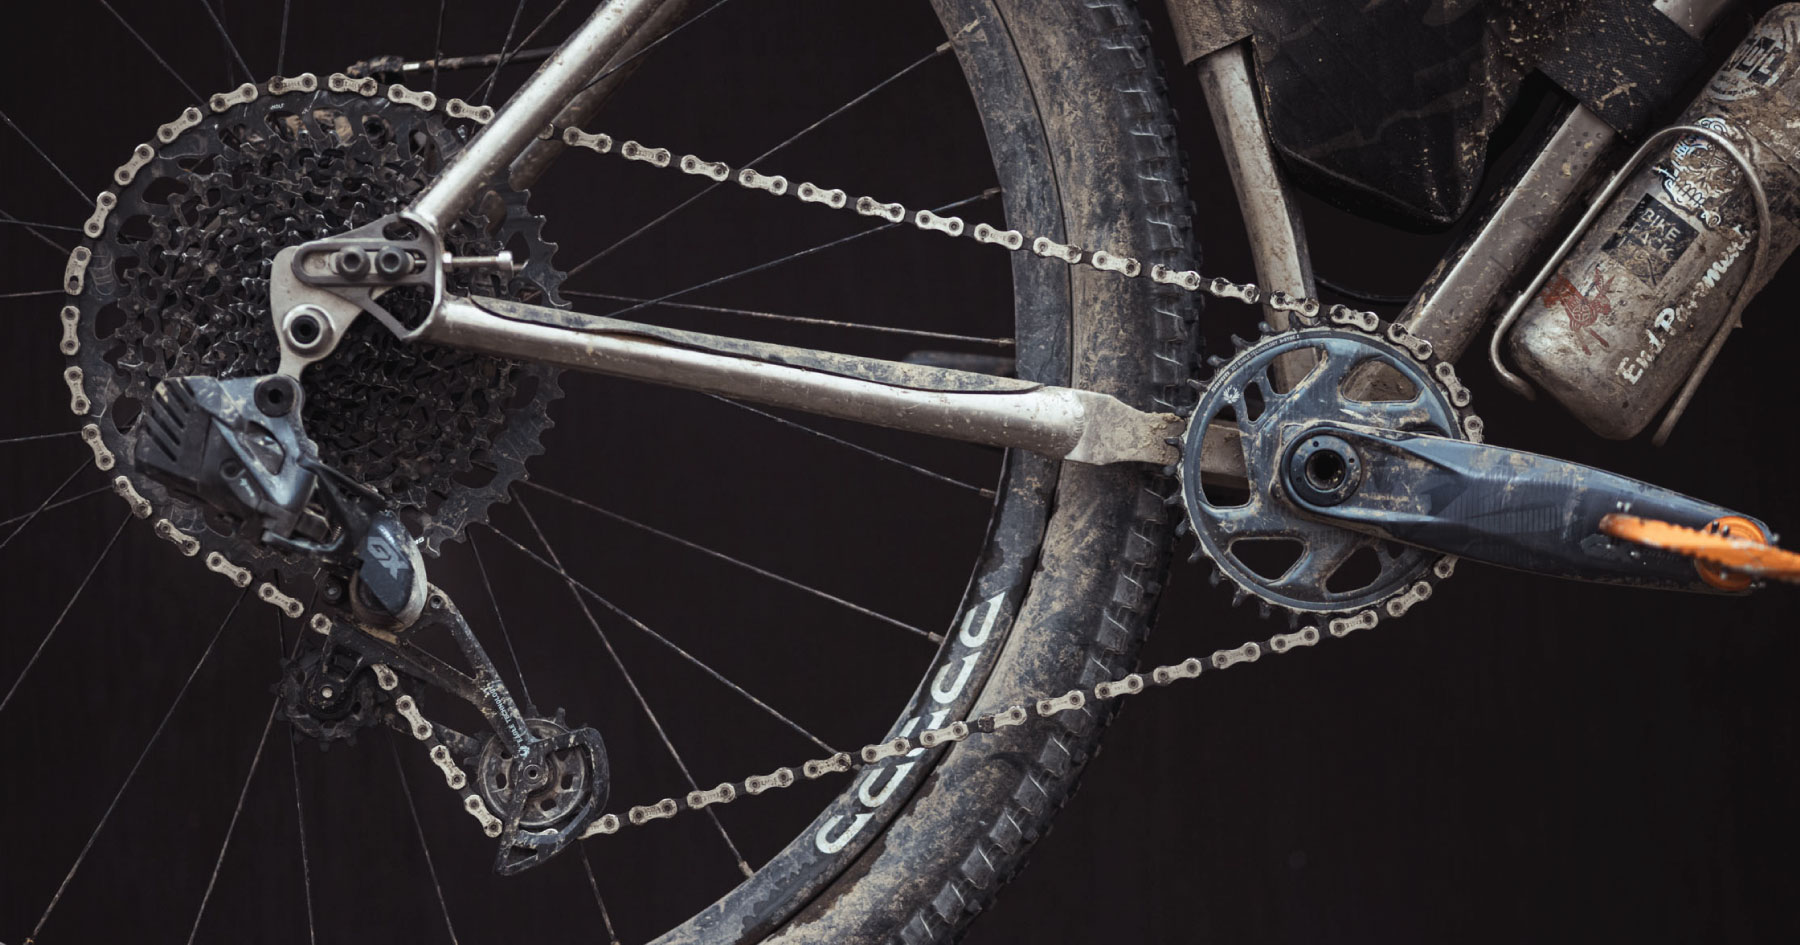 SRAM GX Eagle AXS Review, First Beat Down